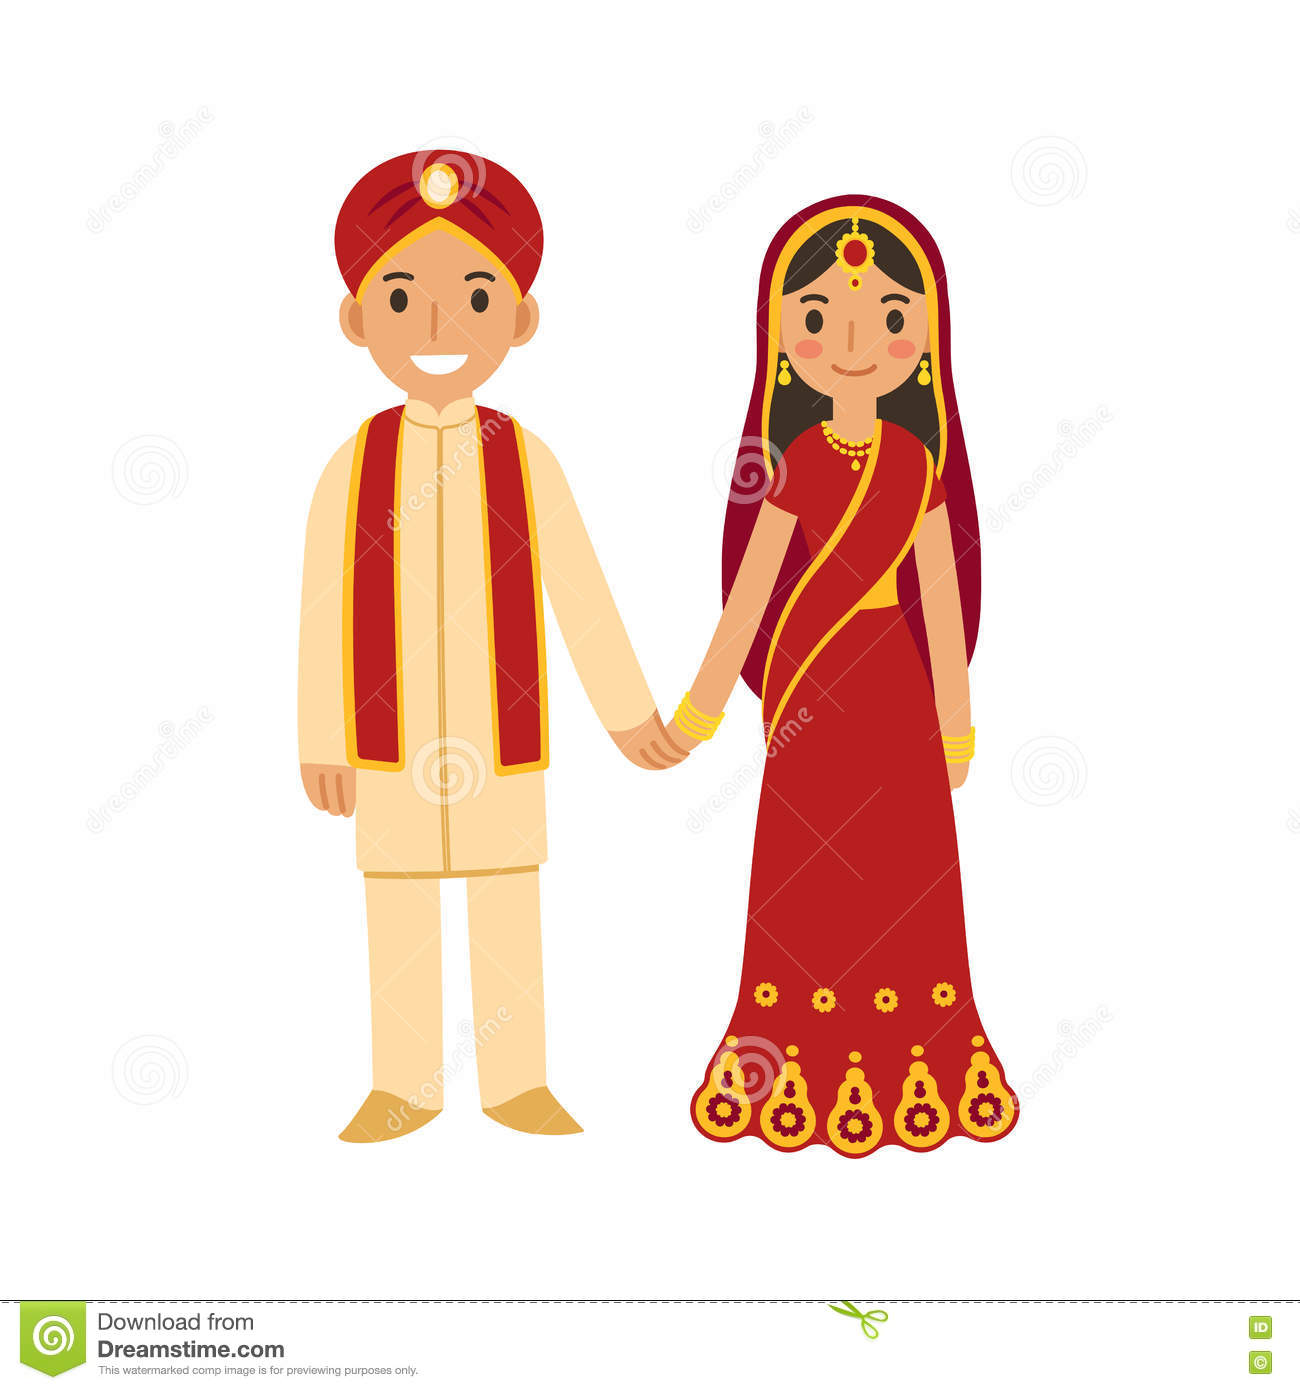 Cute Punjabi Married Couple Wallpaper Indian Wedding Couple Stock Vector Illustration Of